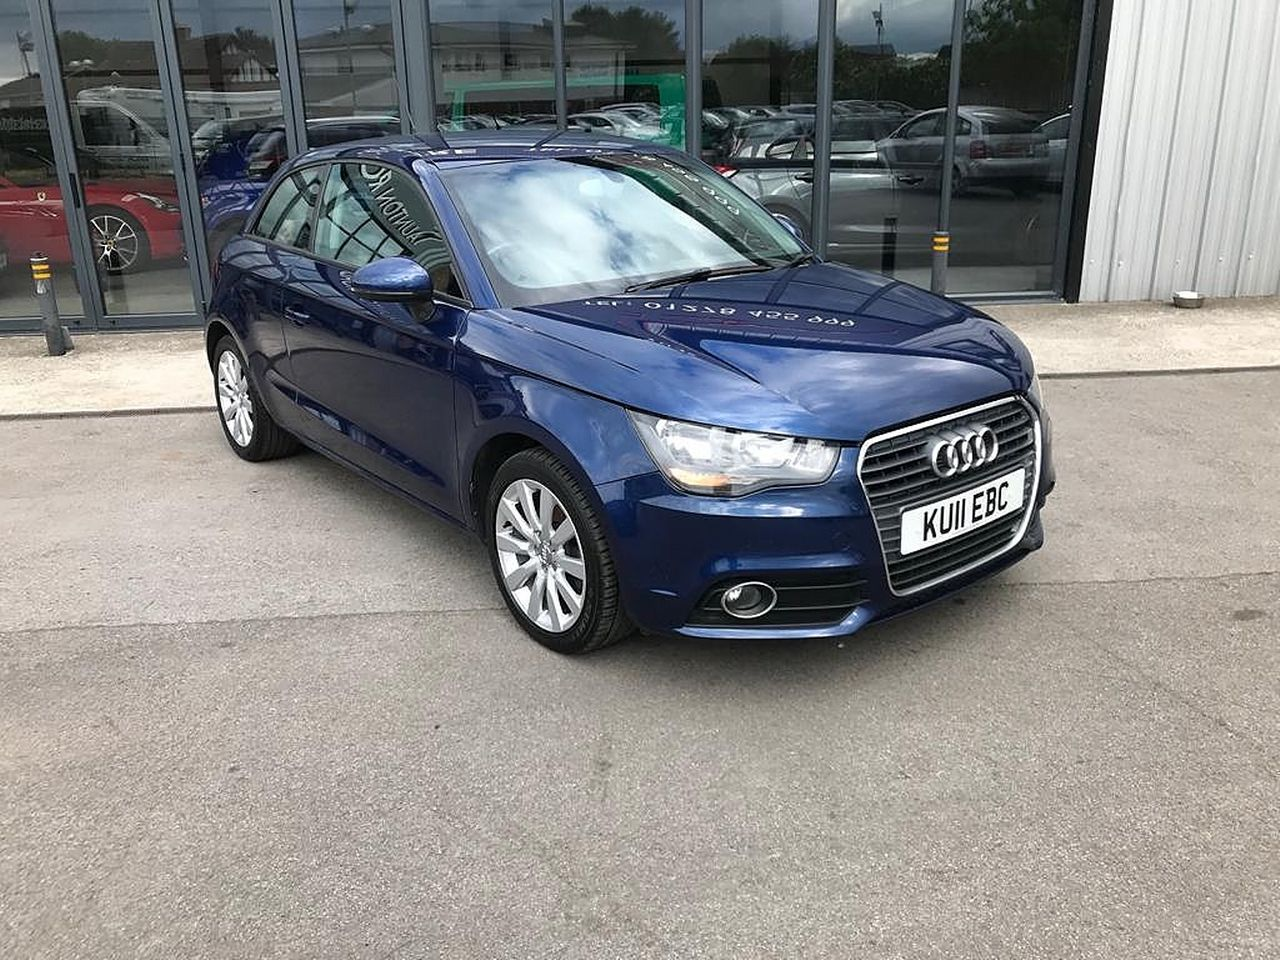 2011 AUDI A1 1.6 TDI Sport 105PS - Picture 1 of 19